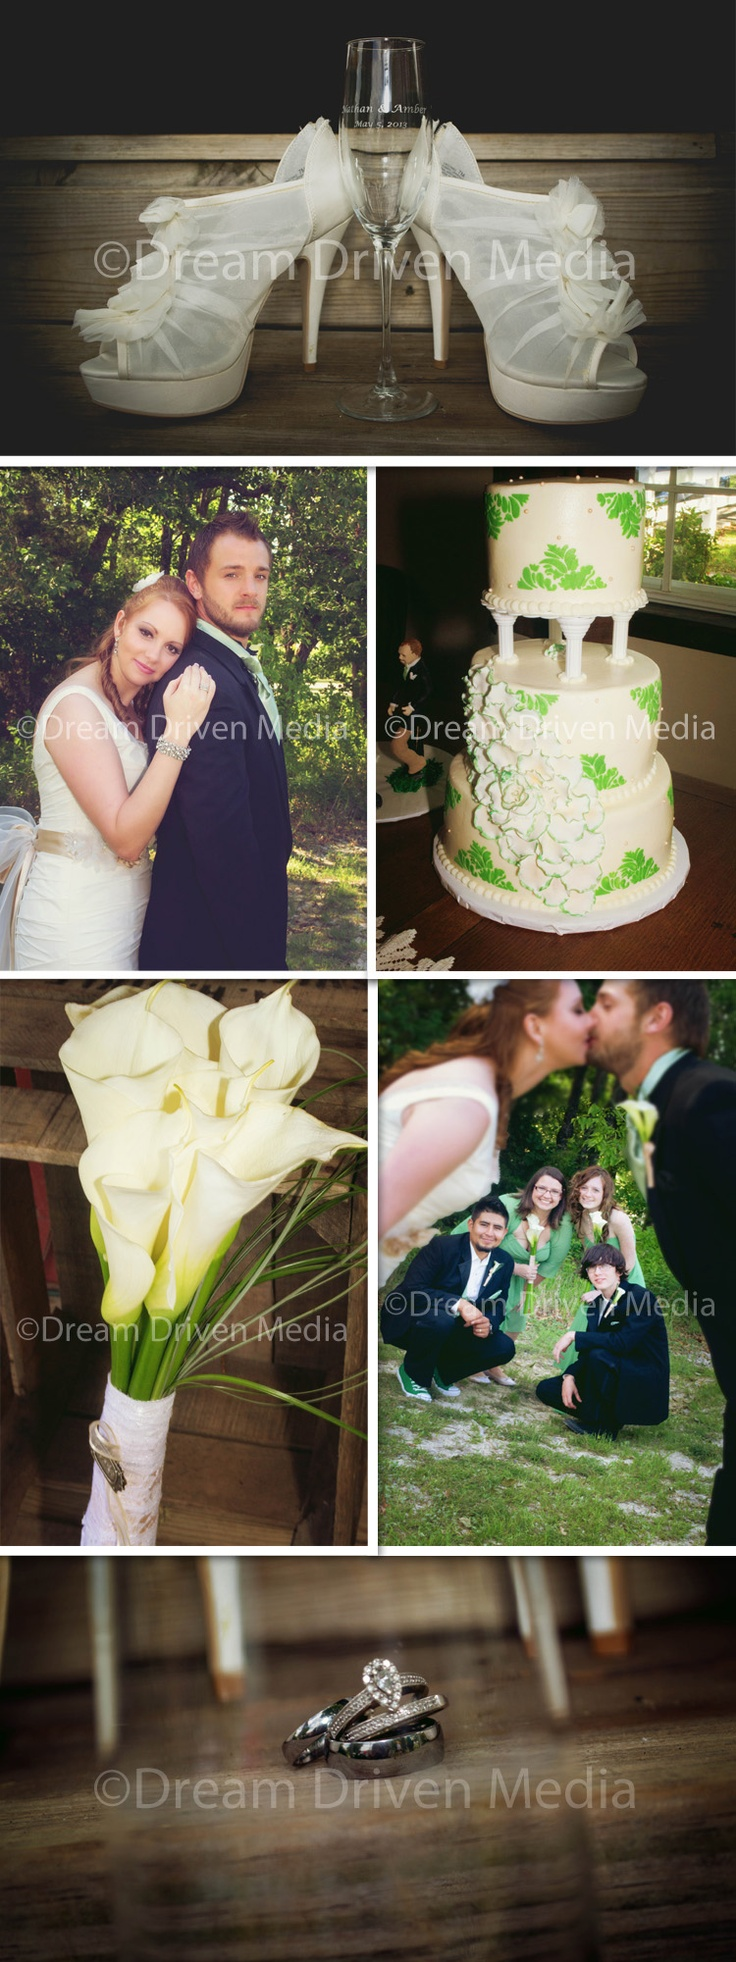 Dallas Wedding Photography And Videography